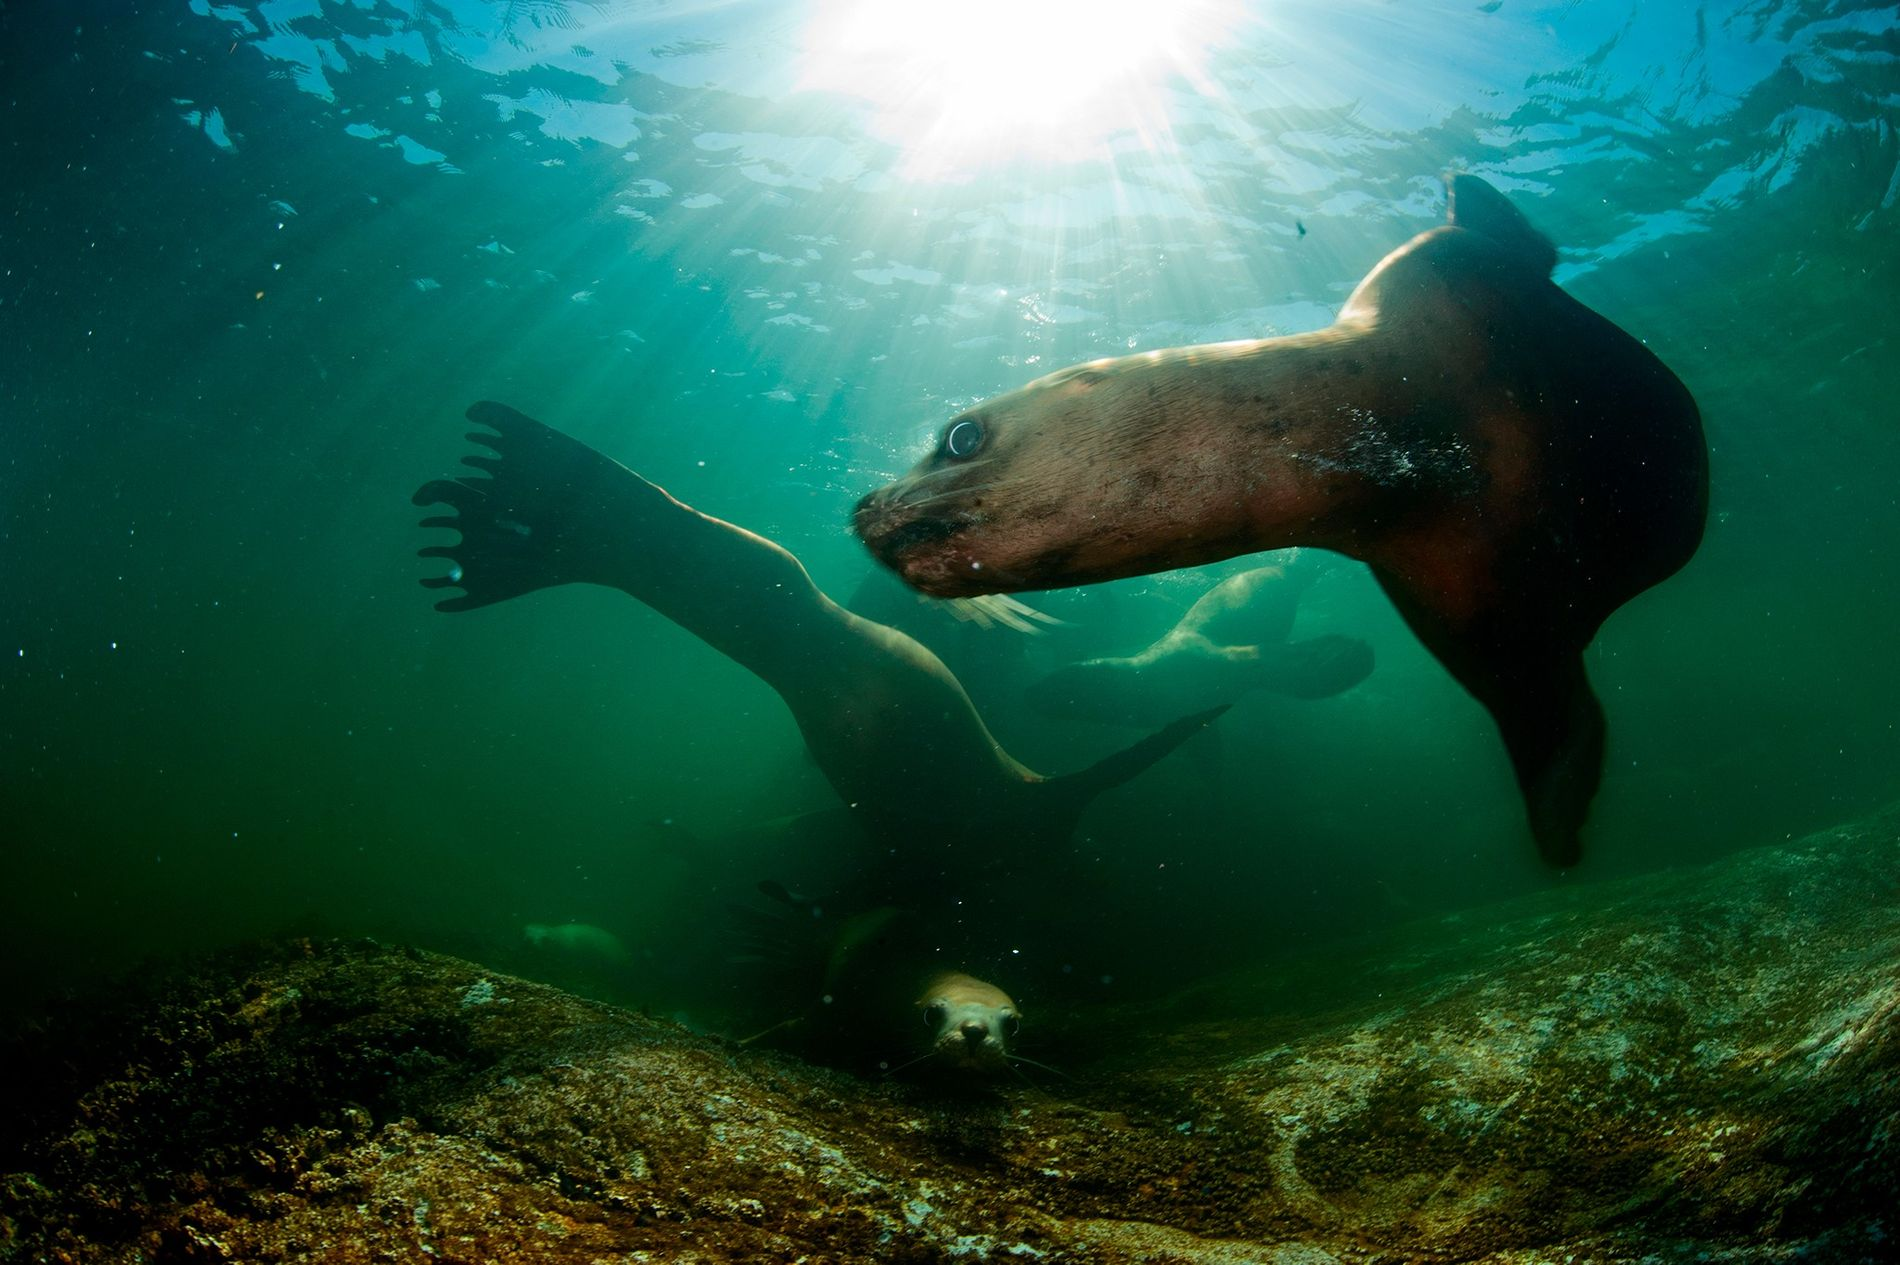 Steller sea lions swim through waters off the coast of British Columbia. Scientists are concerned that a deadly virus killing northern sea lions could spread farther south as the ice melts, infecting marine mammals off the coast of California.